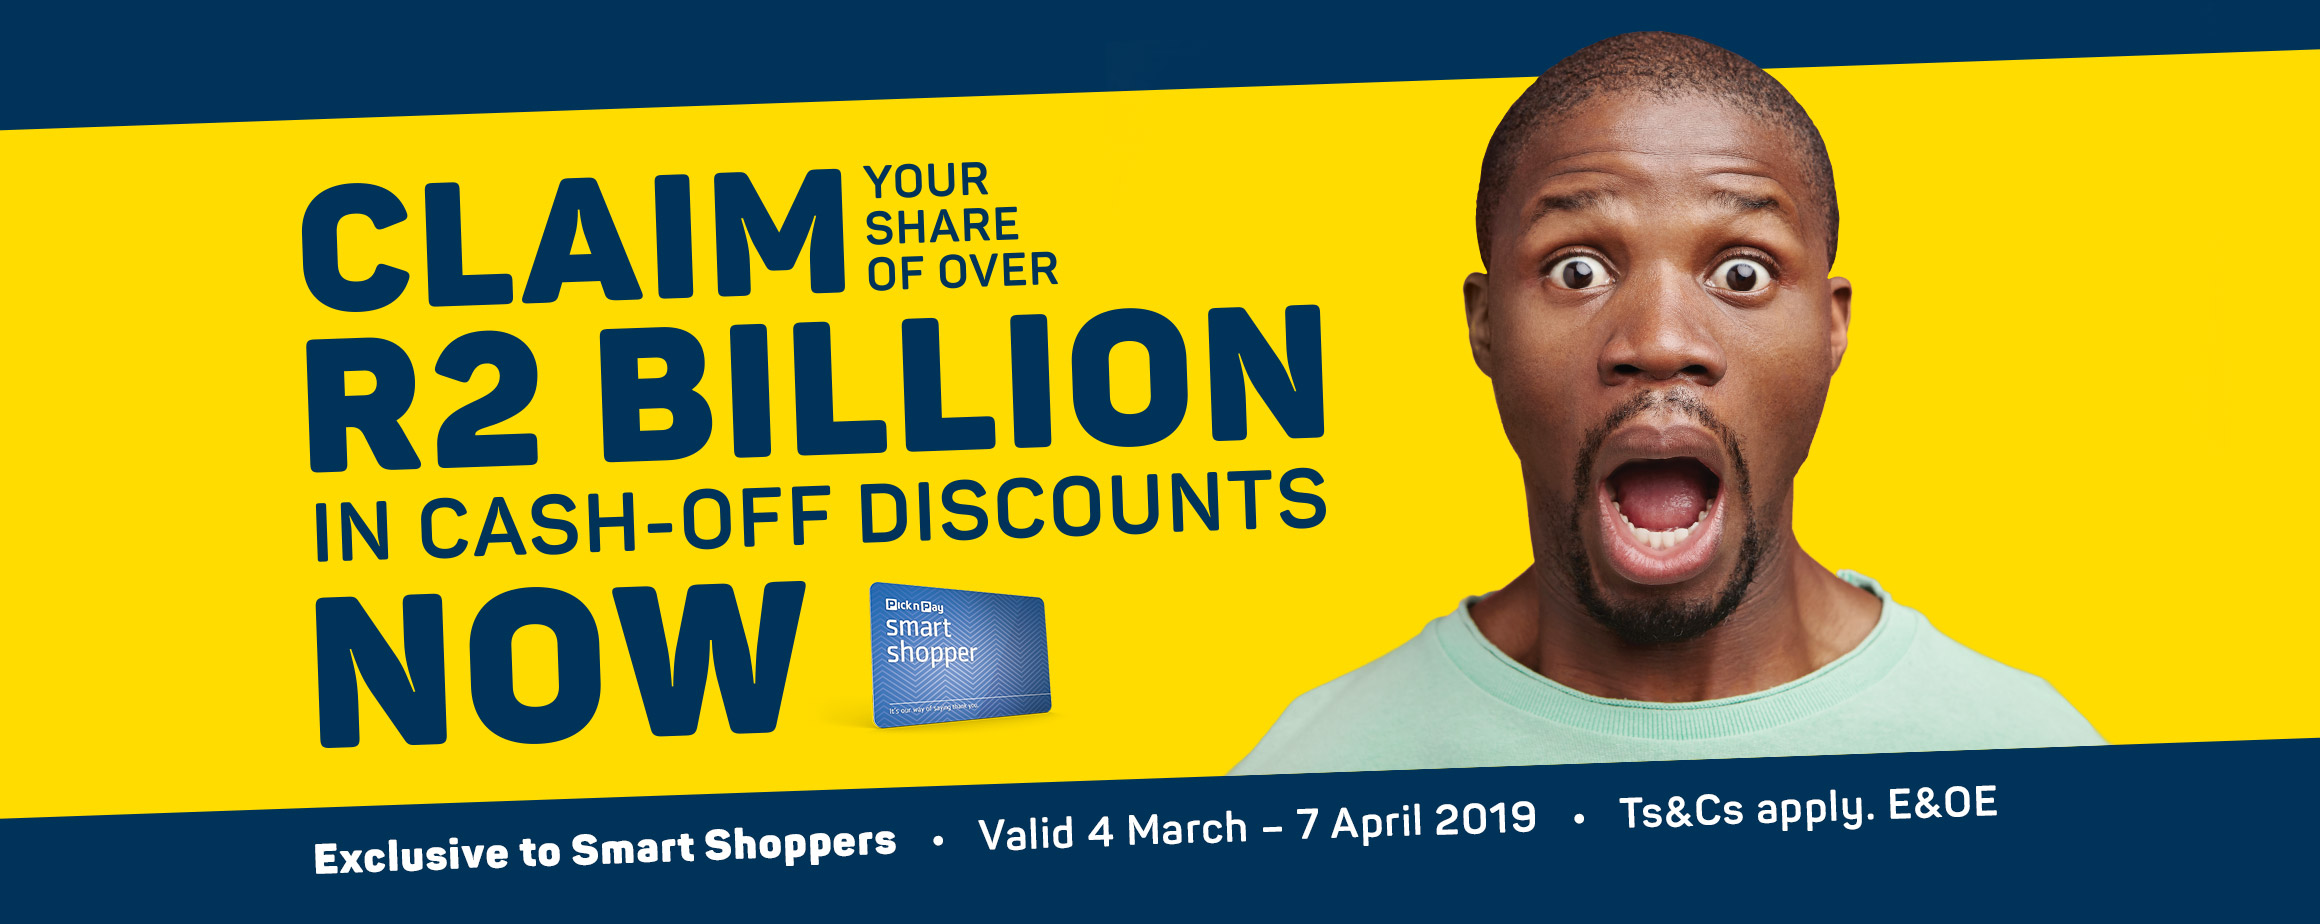 Claim your share of over R2 Billion un cash-off discounts now